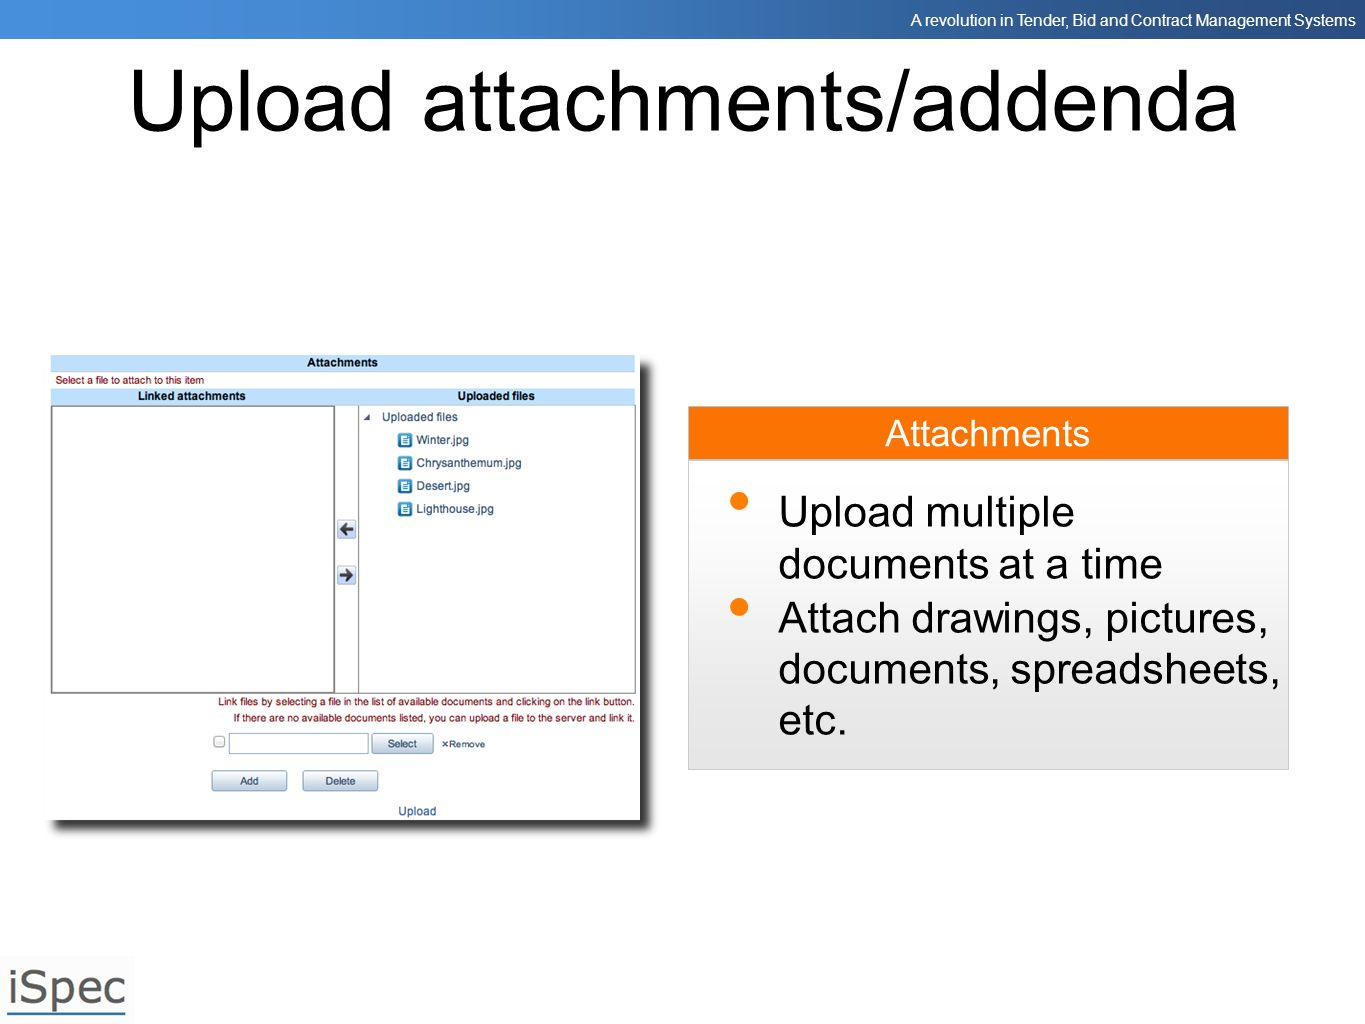 Upload attachments/addenda